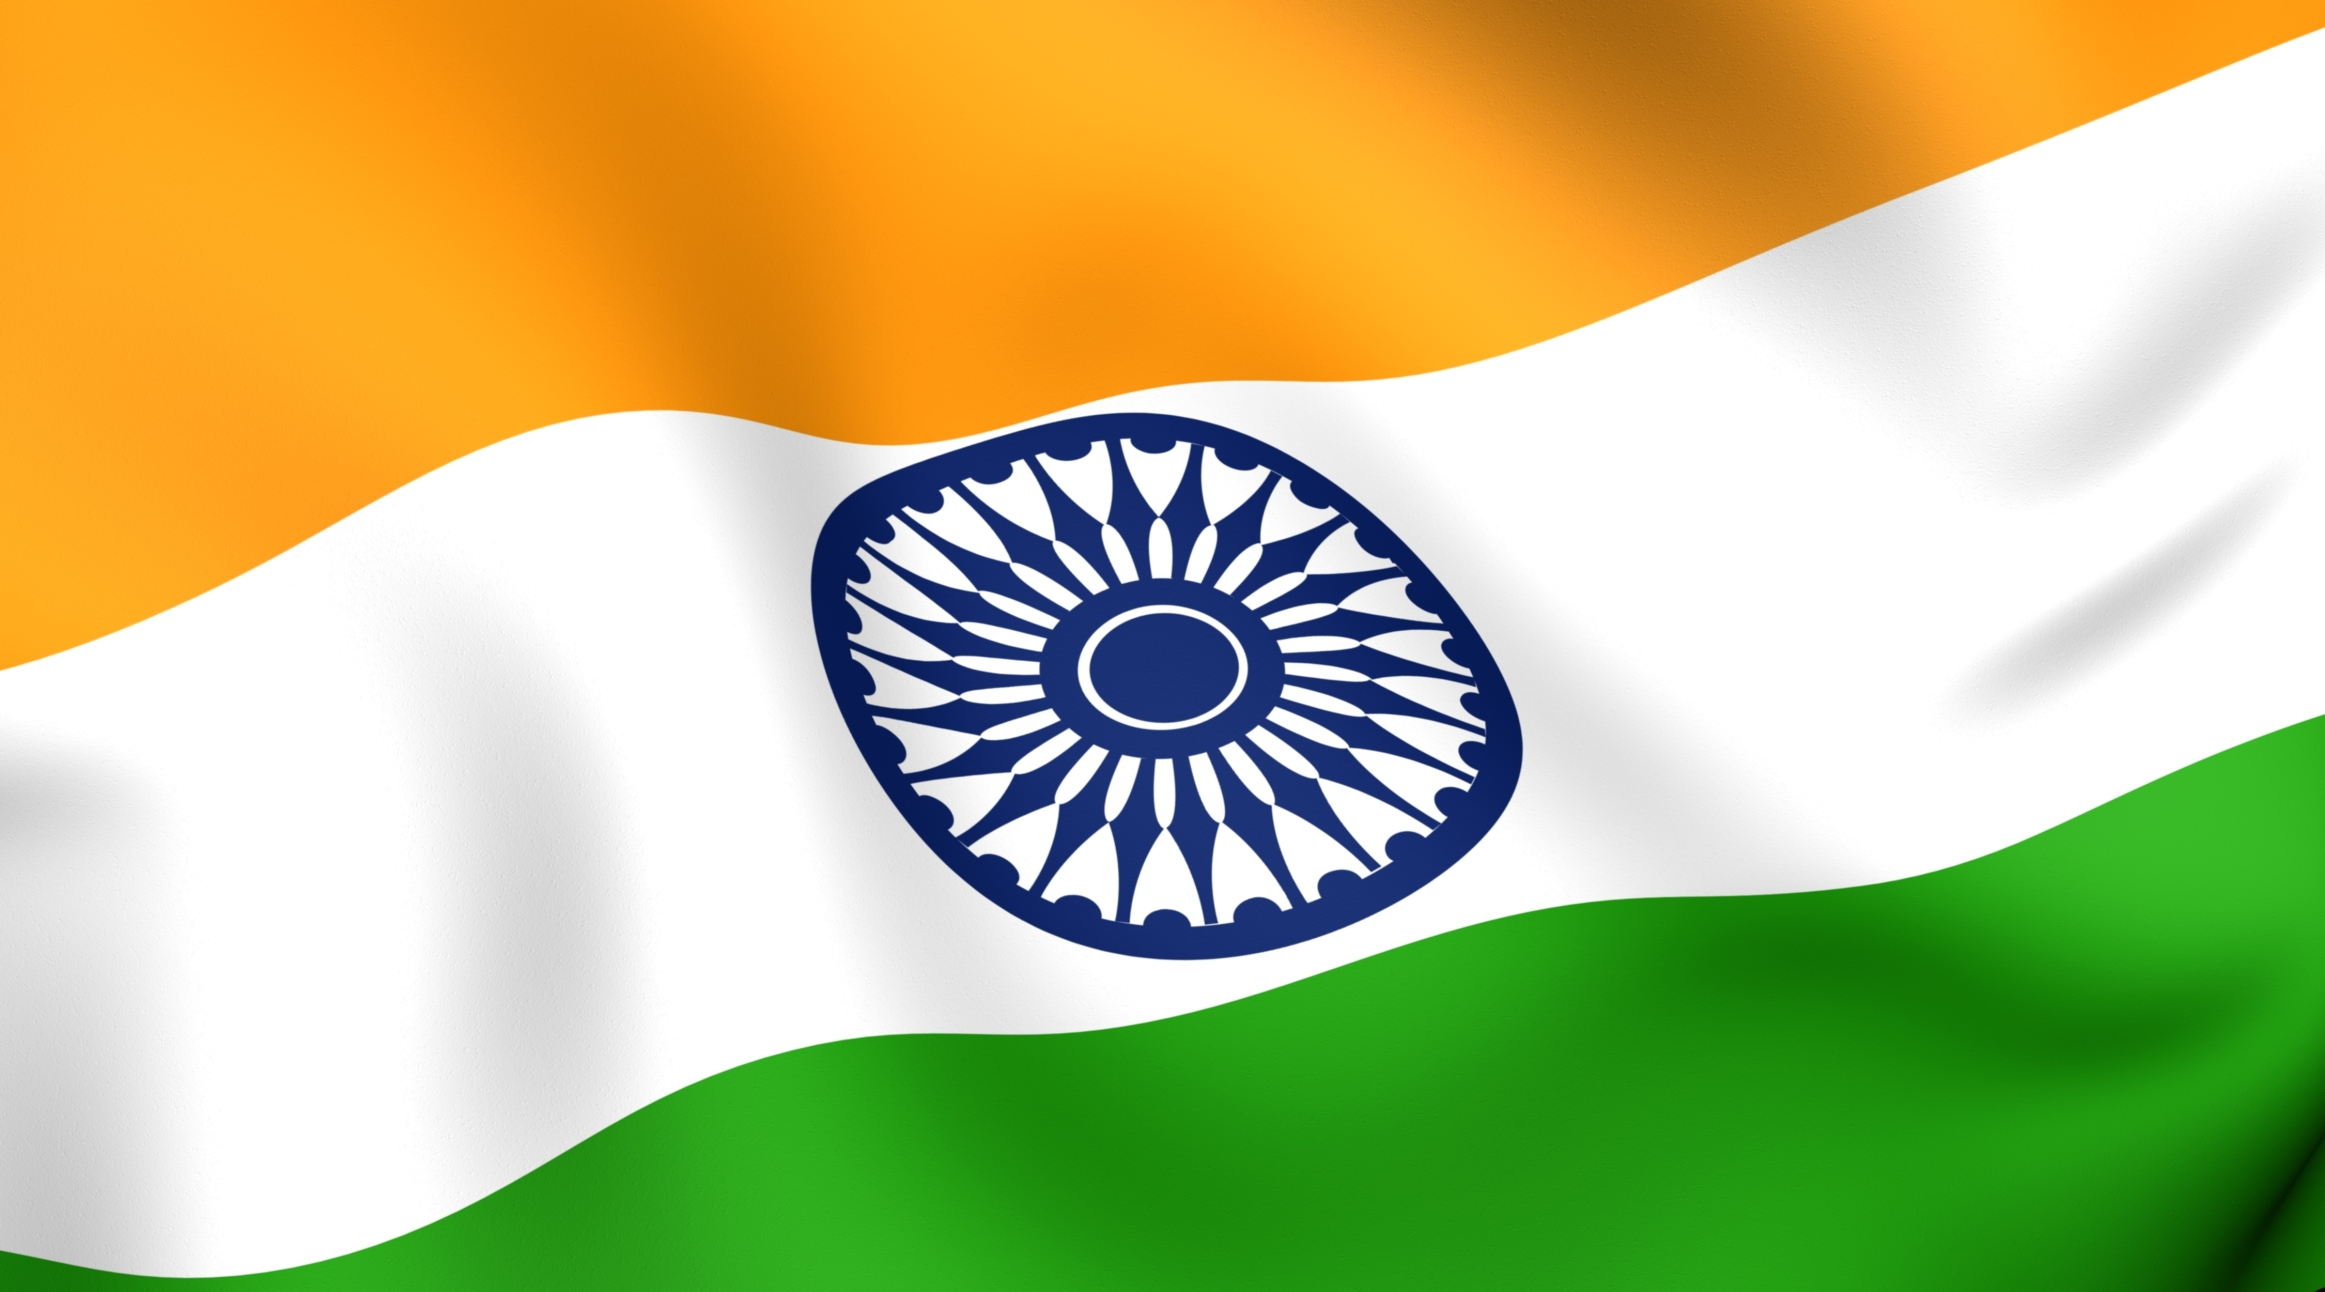 Indian Flag Hd Wallpaper: Indian Flag Wallpapers & HD Images 2018 [Free Download]